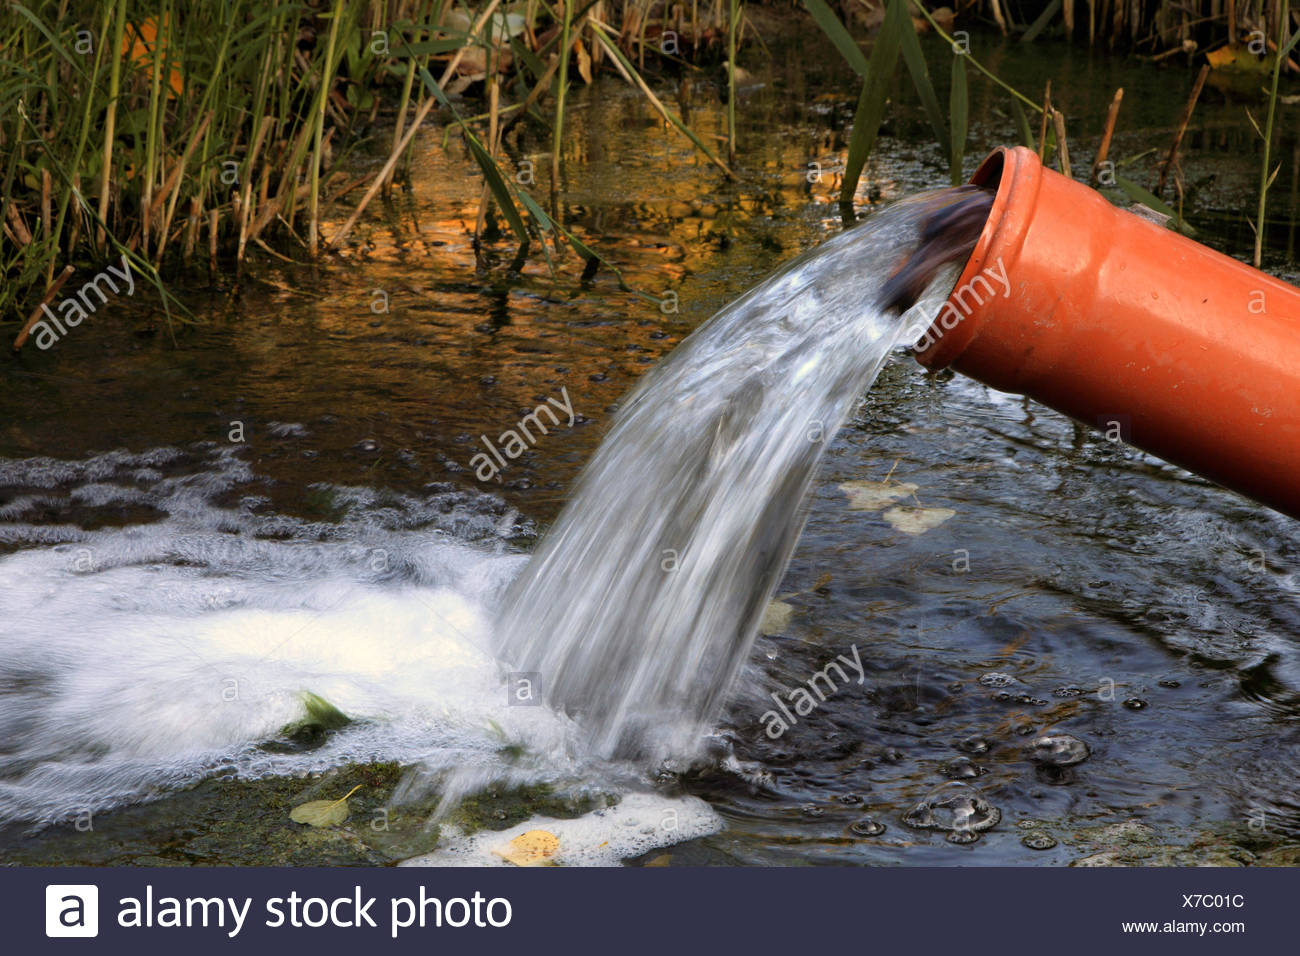 water running out of a pipe, Germany - Stock Image